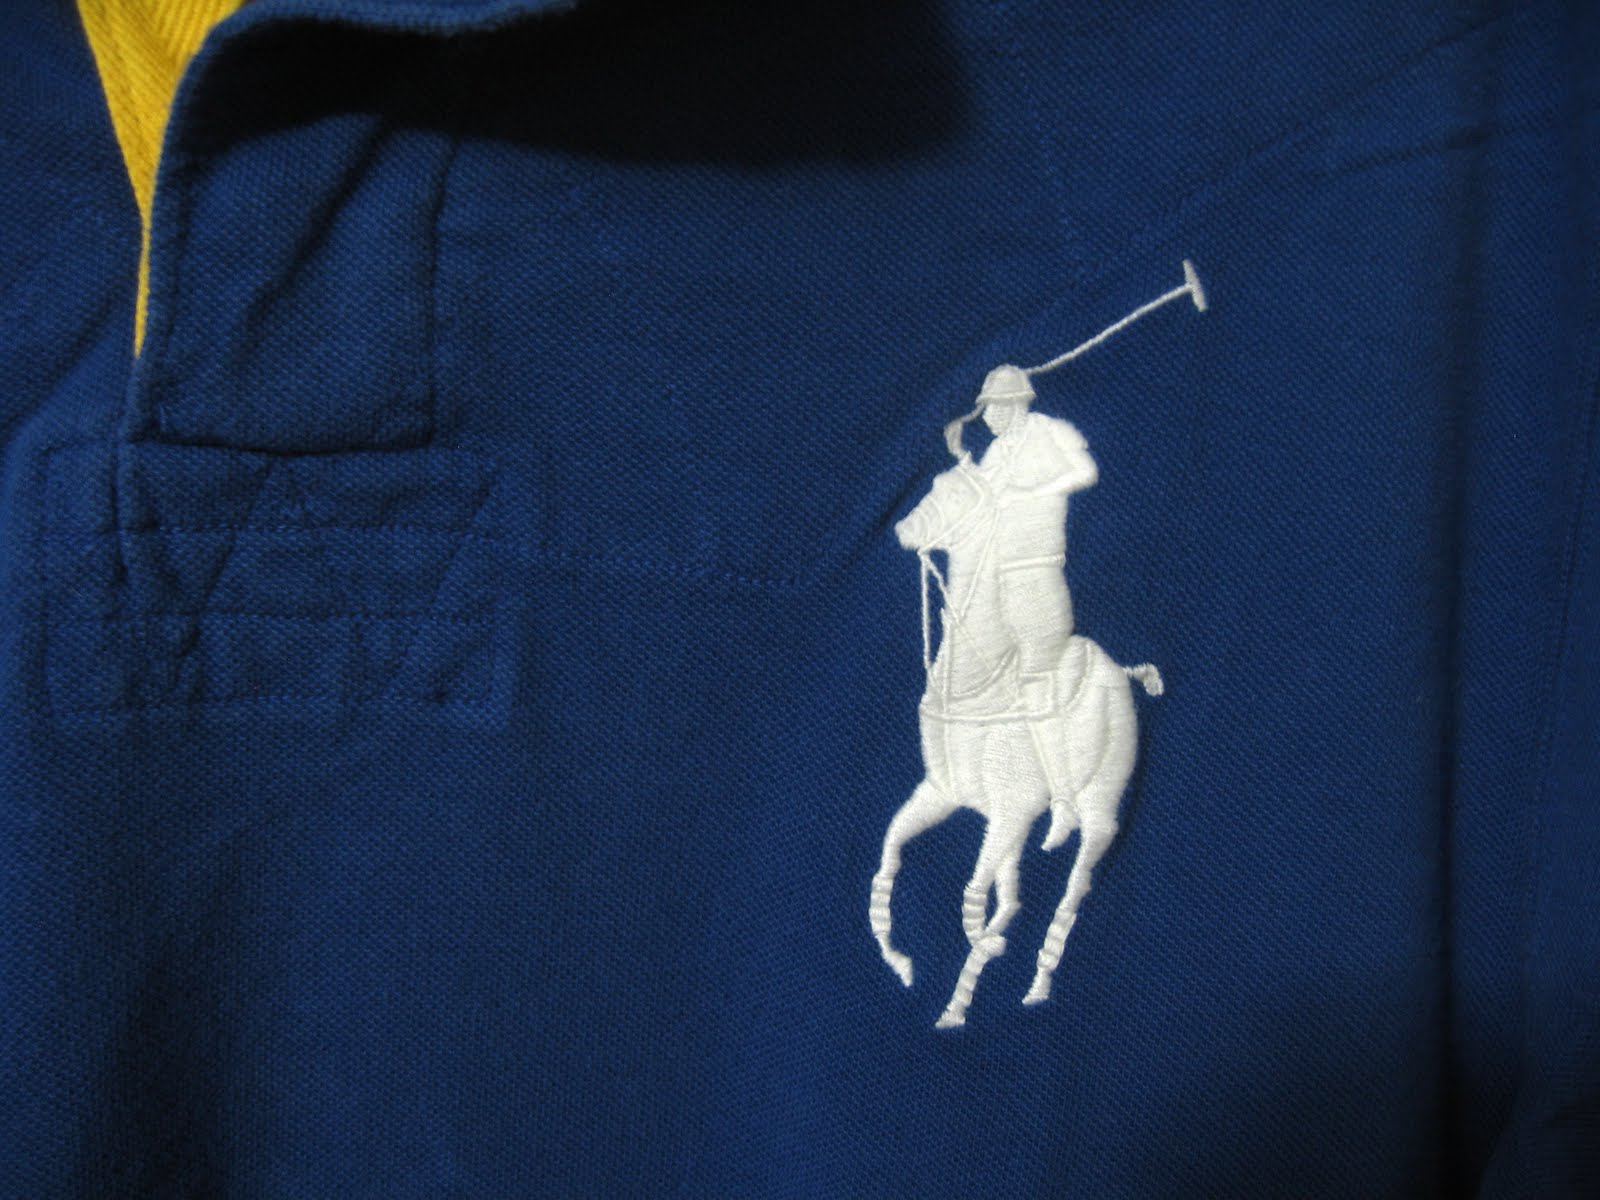 Polo Ralph Lauren Logo Layouts Backgrounds Polo ralph lauren horse 1600x1200